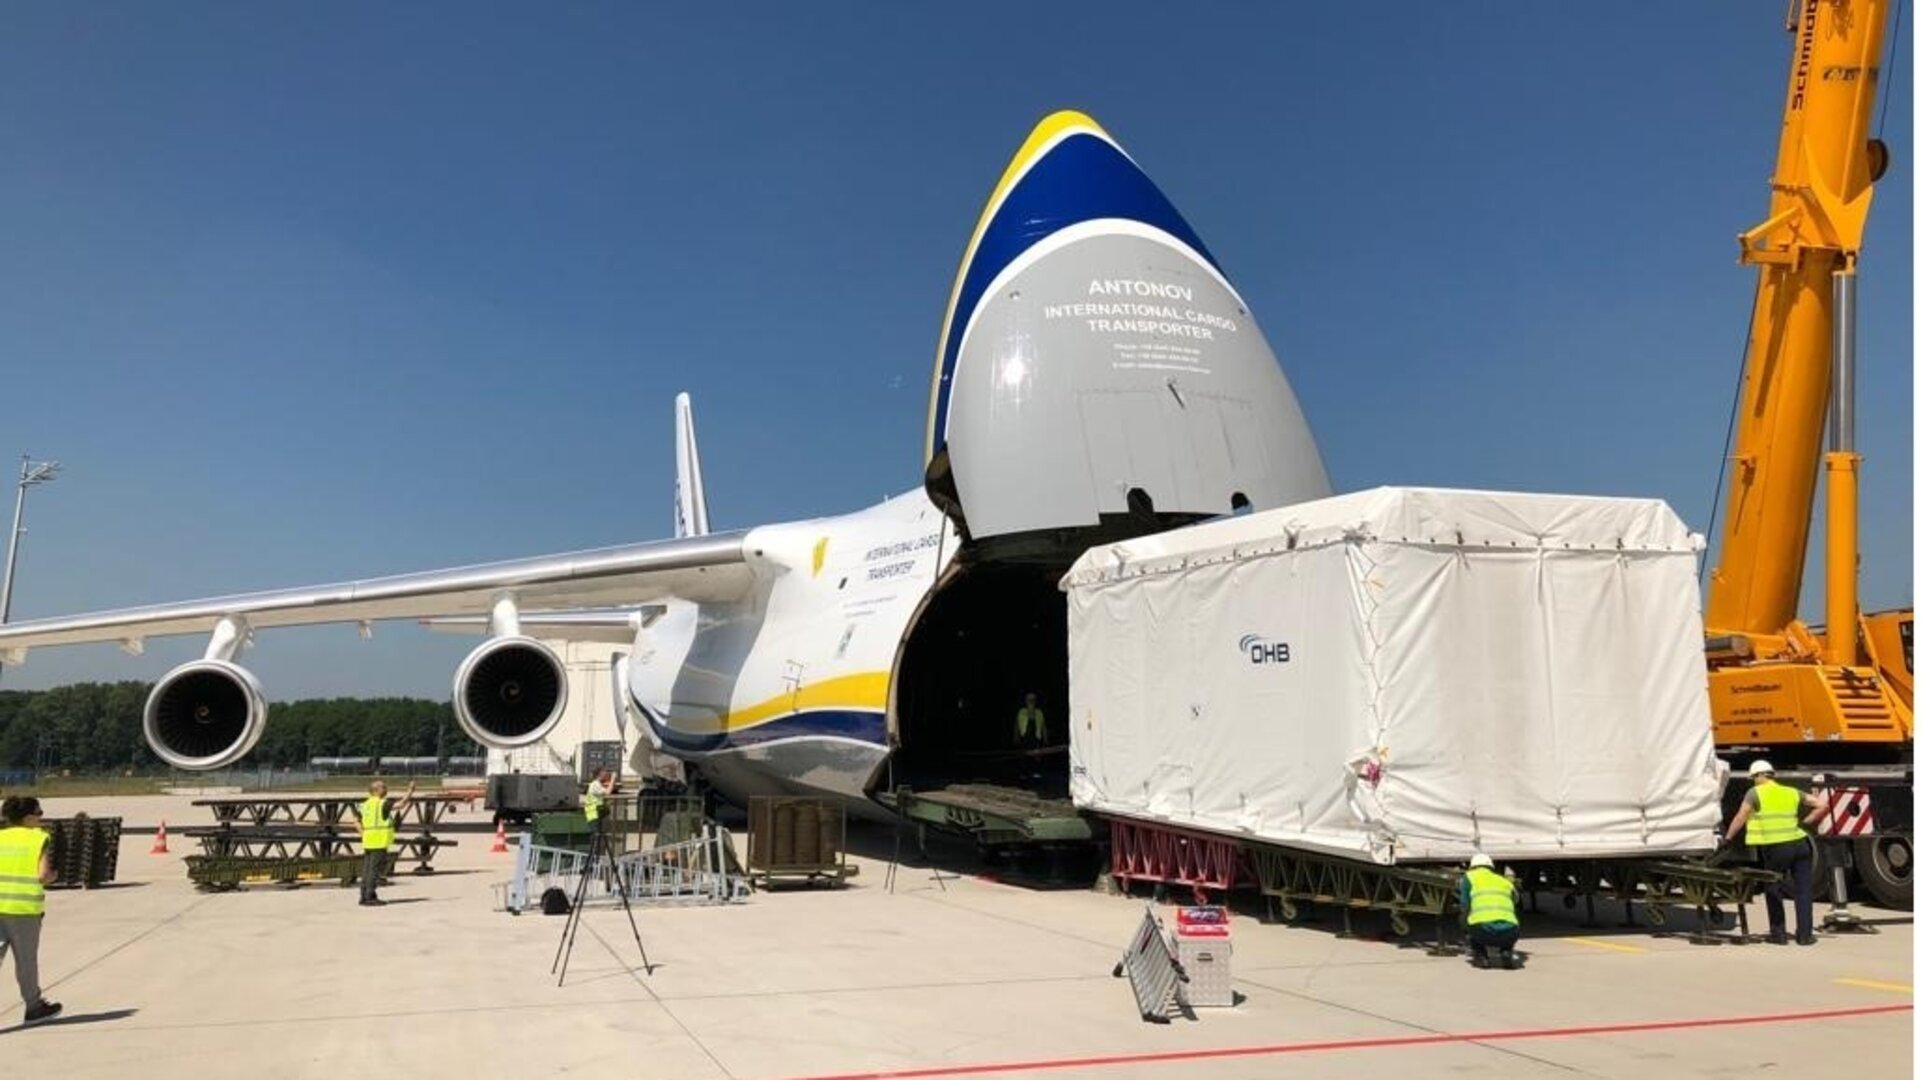 The EDRS-C satellite being loaded onto an Antonov cargo transport plane